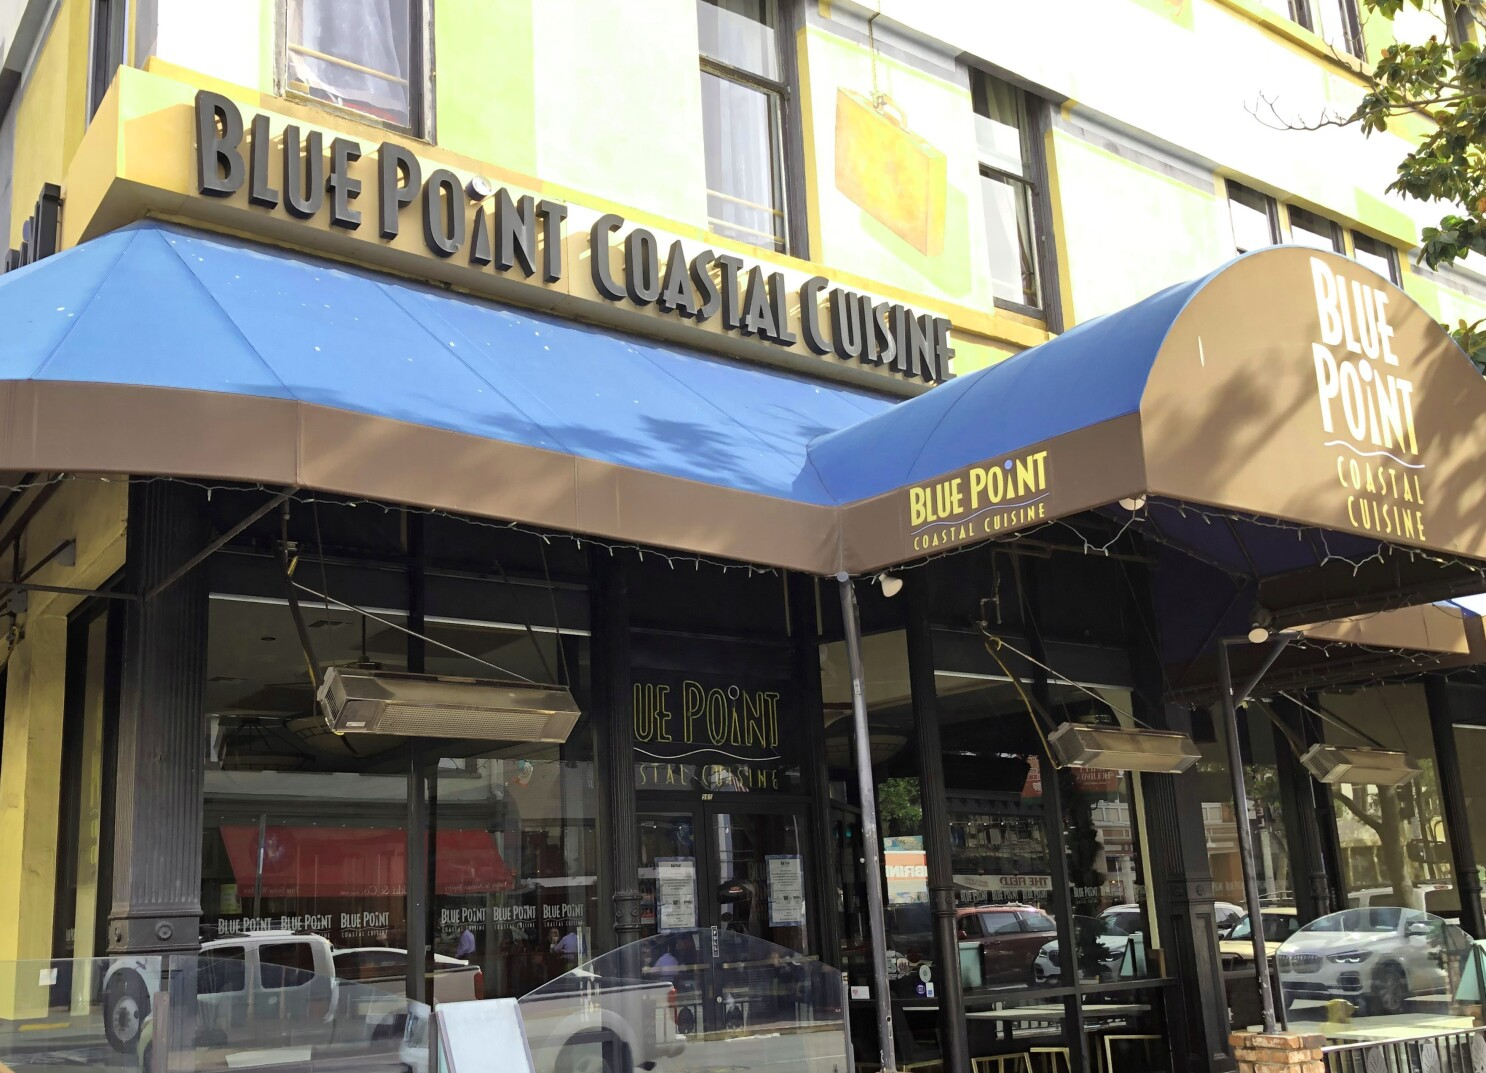 Blue Point restaurant, a nearly 24-year mainstay in the Gaslamp, has closed